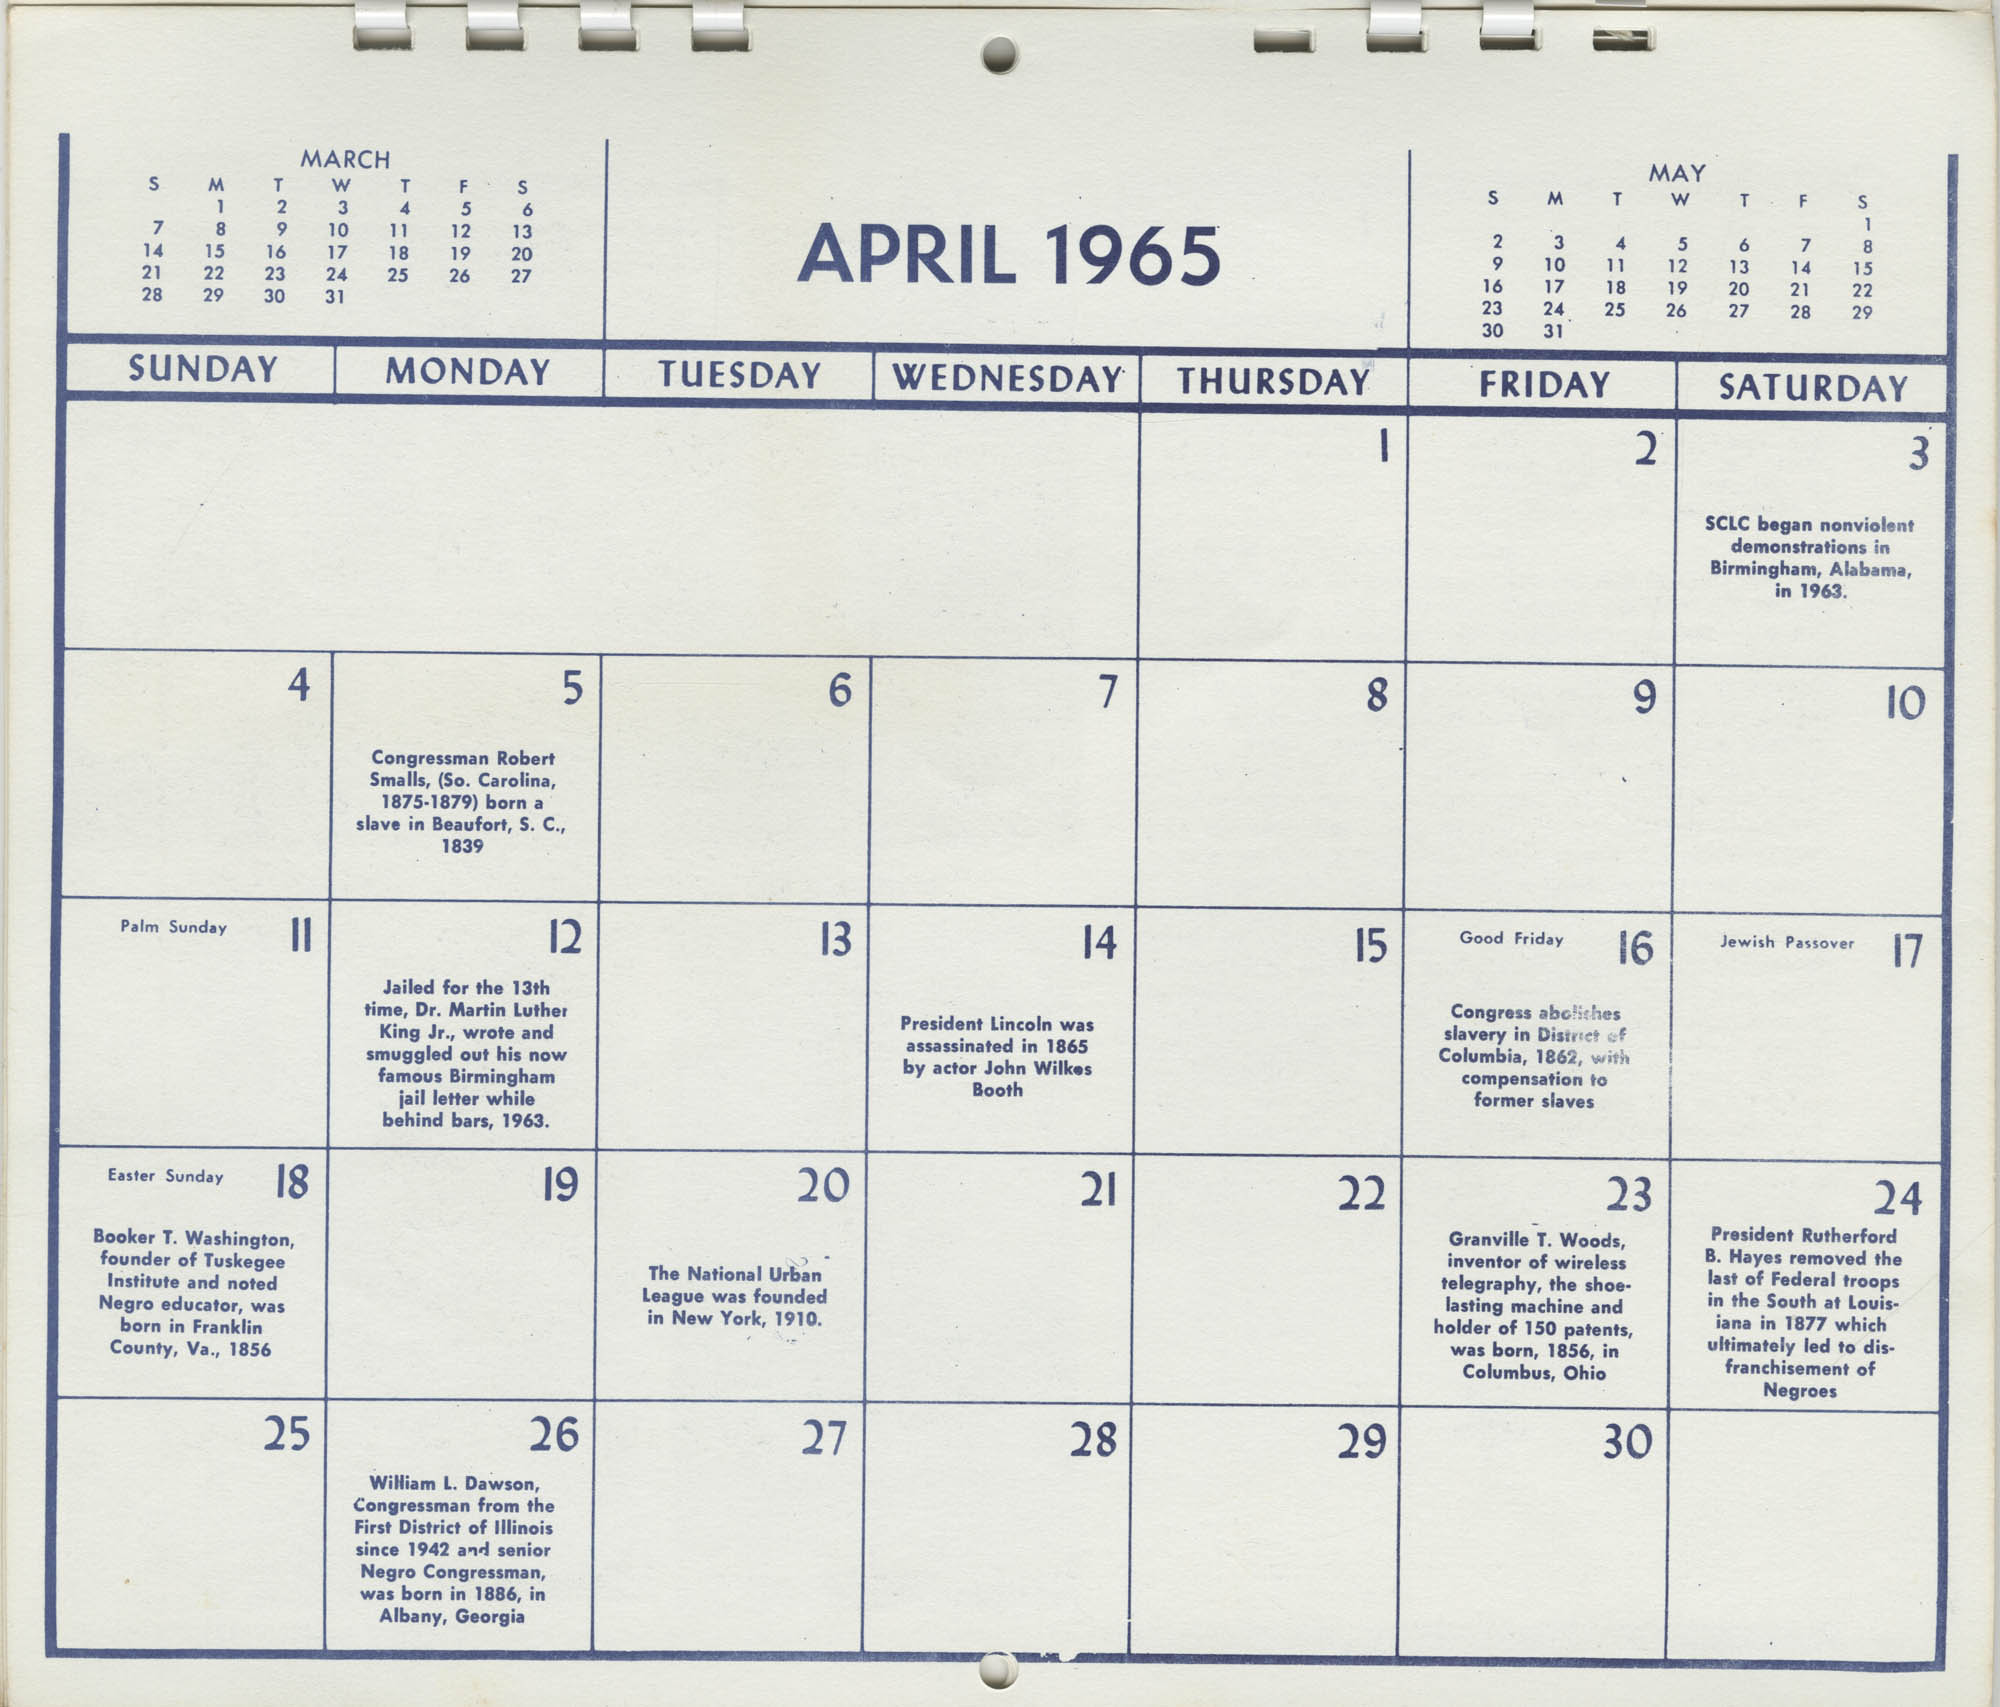 Southern Christian Leadership Conference Newsletter Calendar, April 1965, Bottom